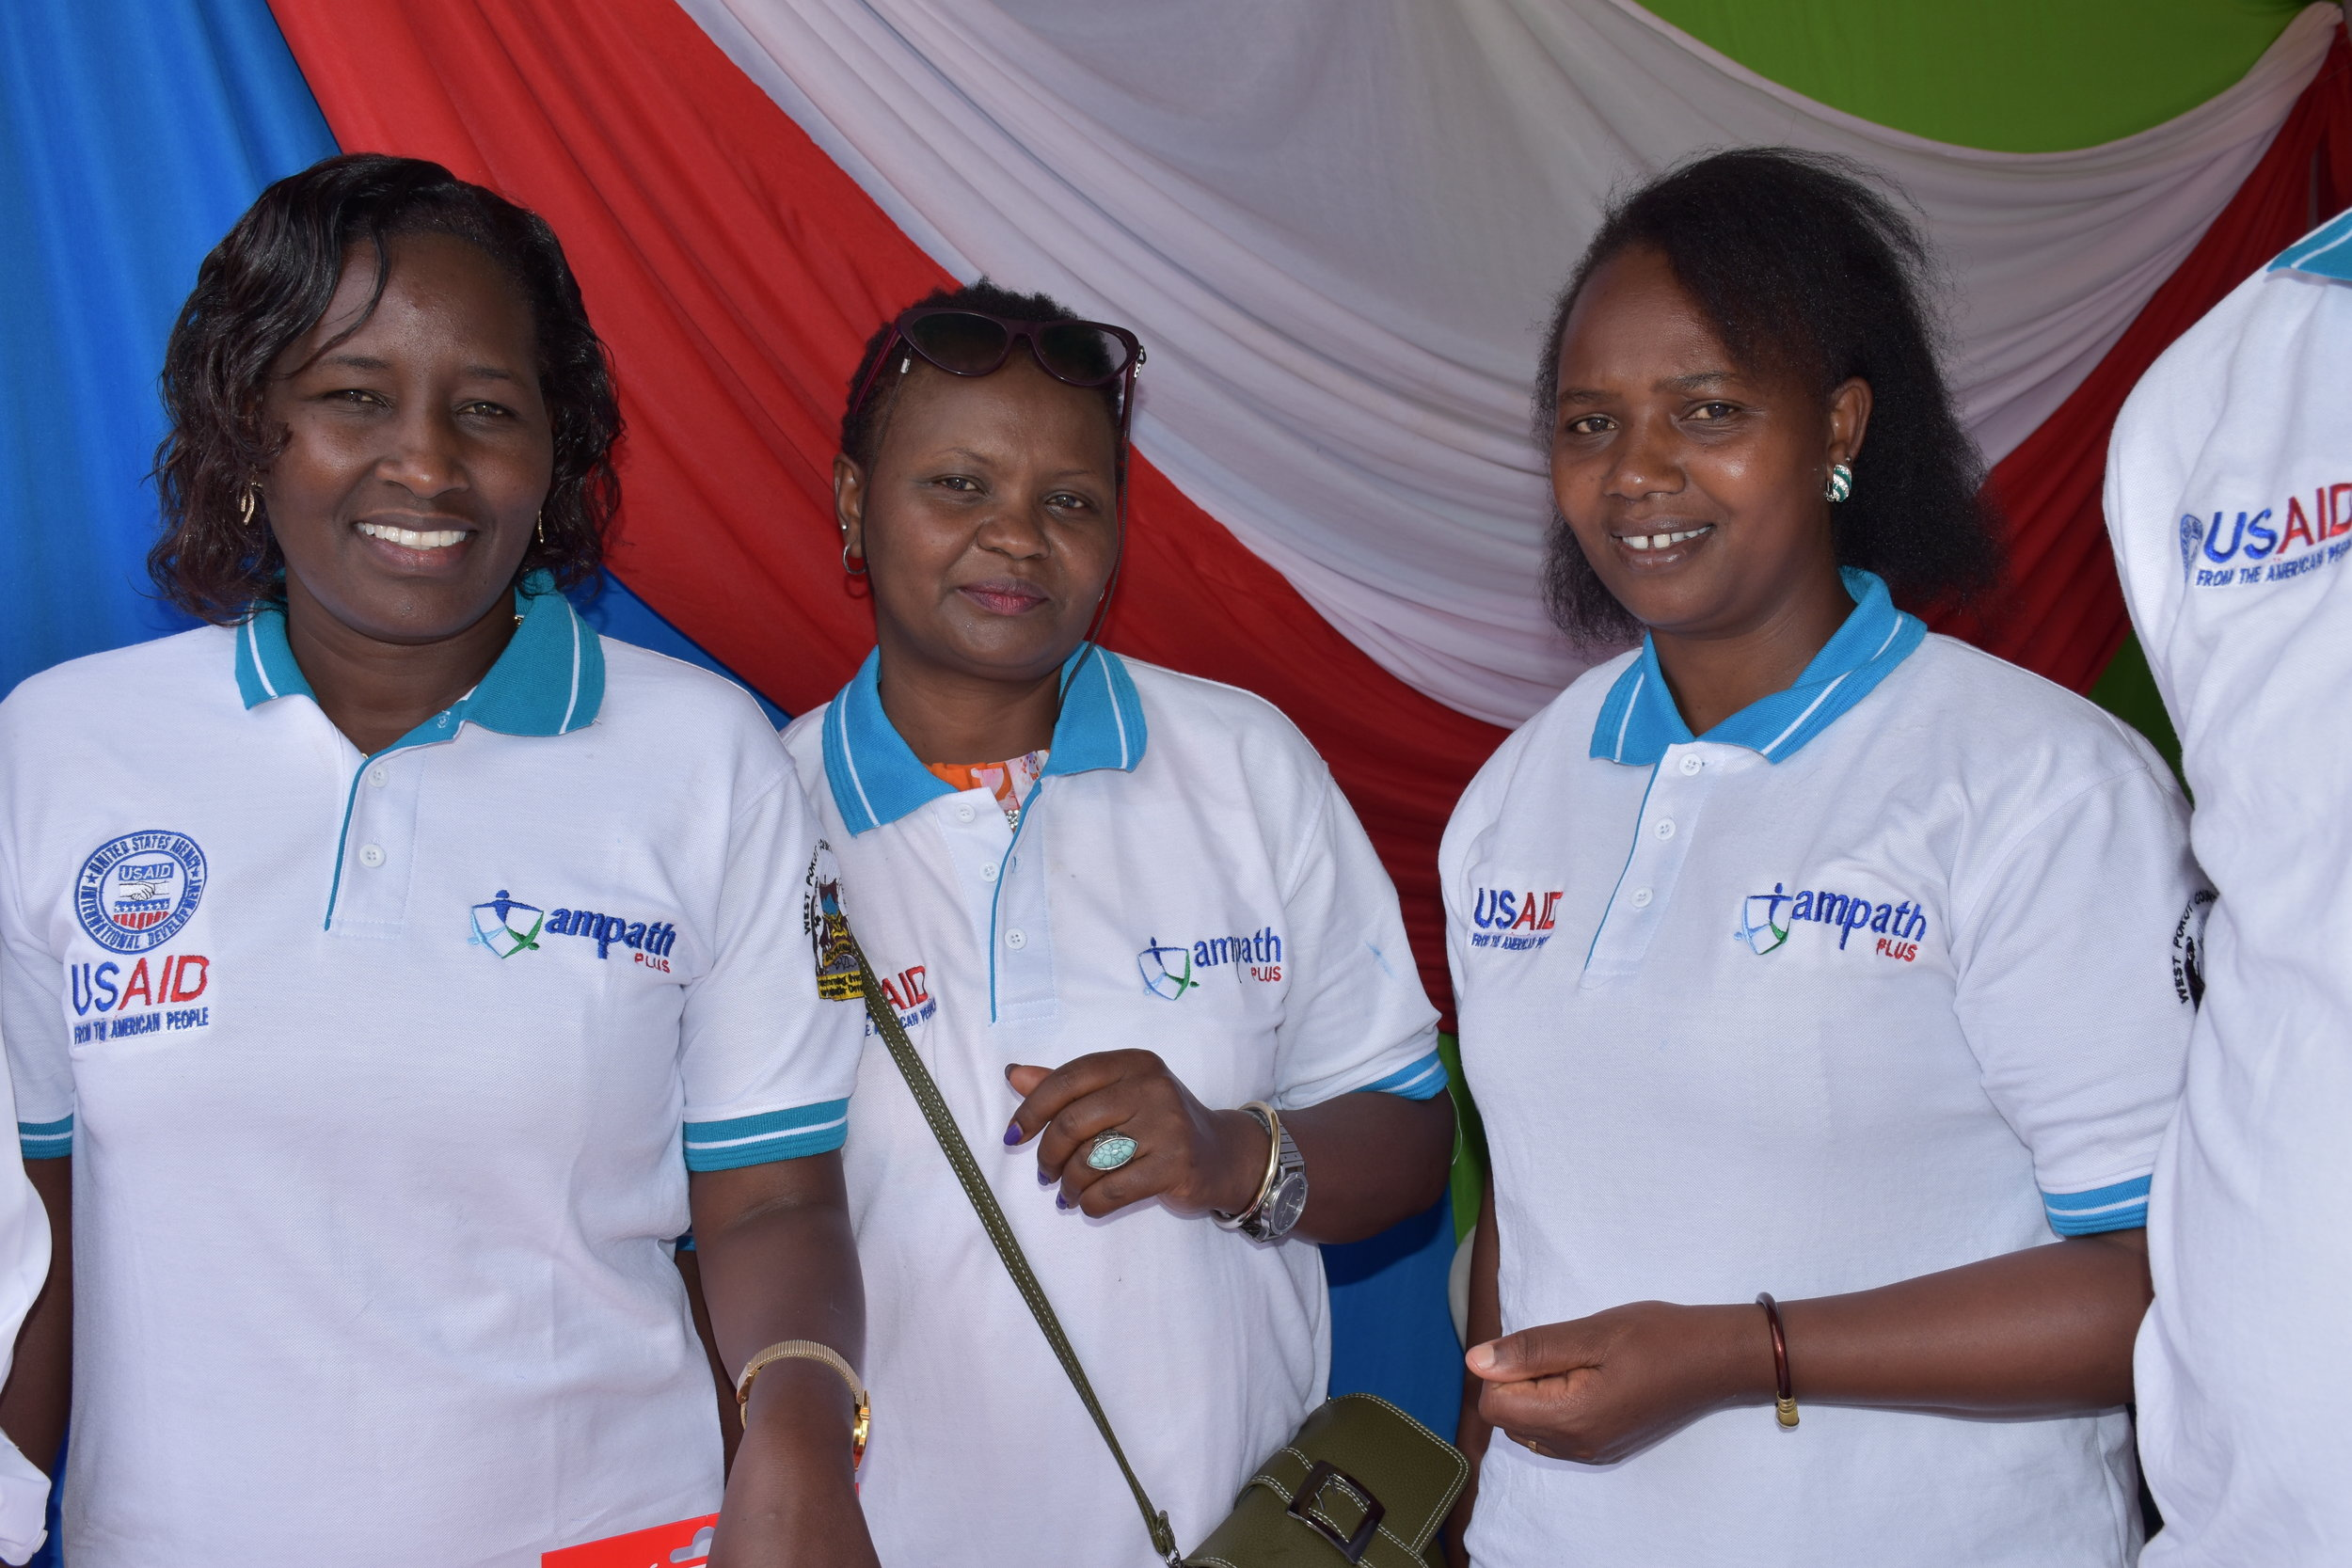 AMPATHPlus staff provide health information at a recent event promoting HIV testing and treatment.